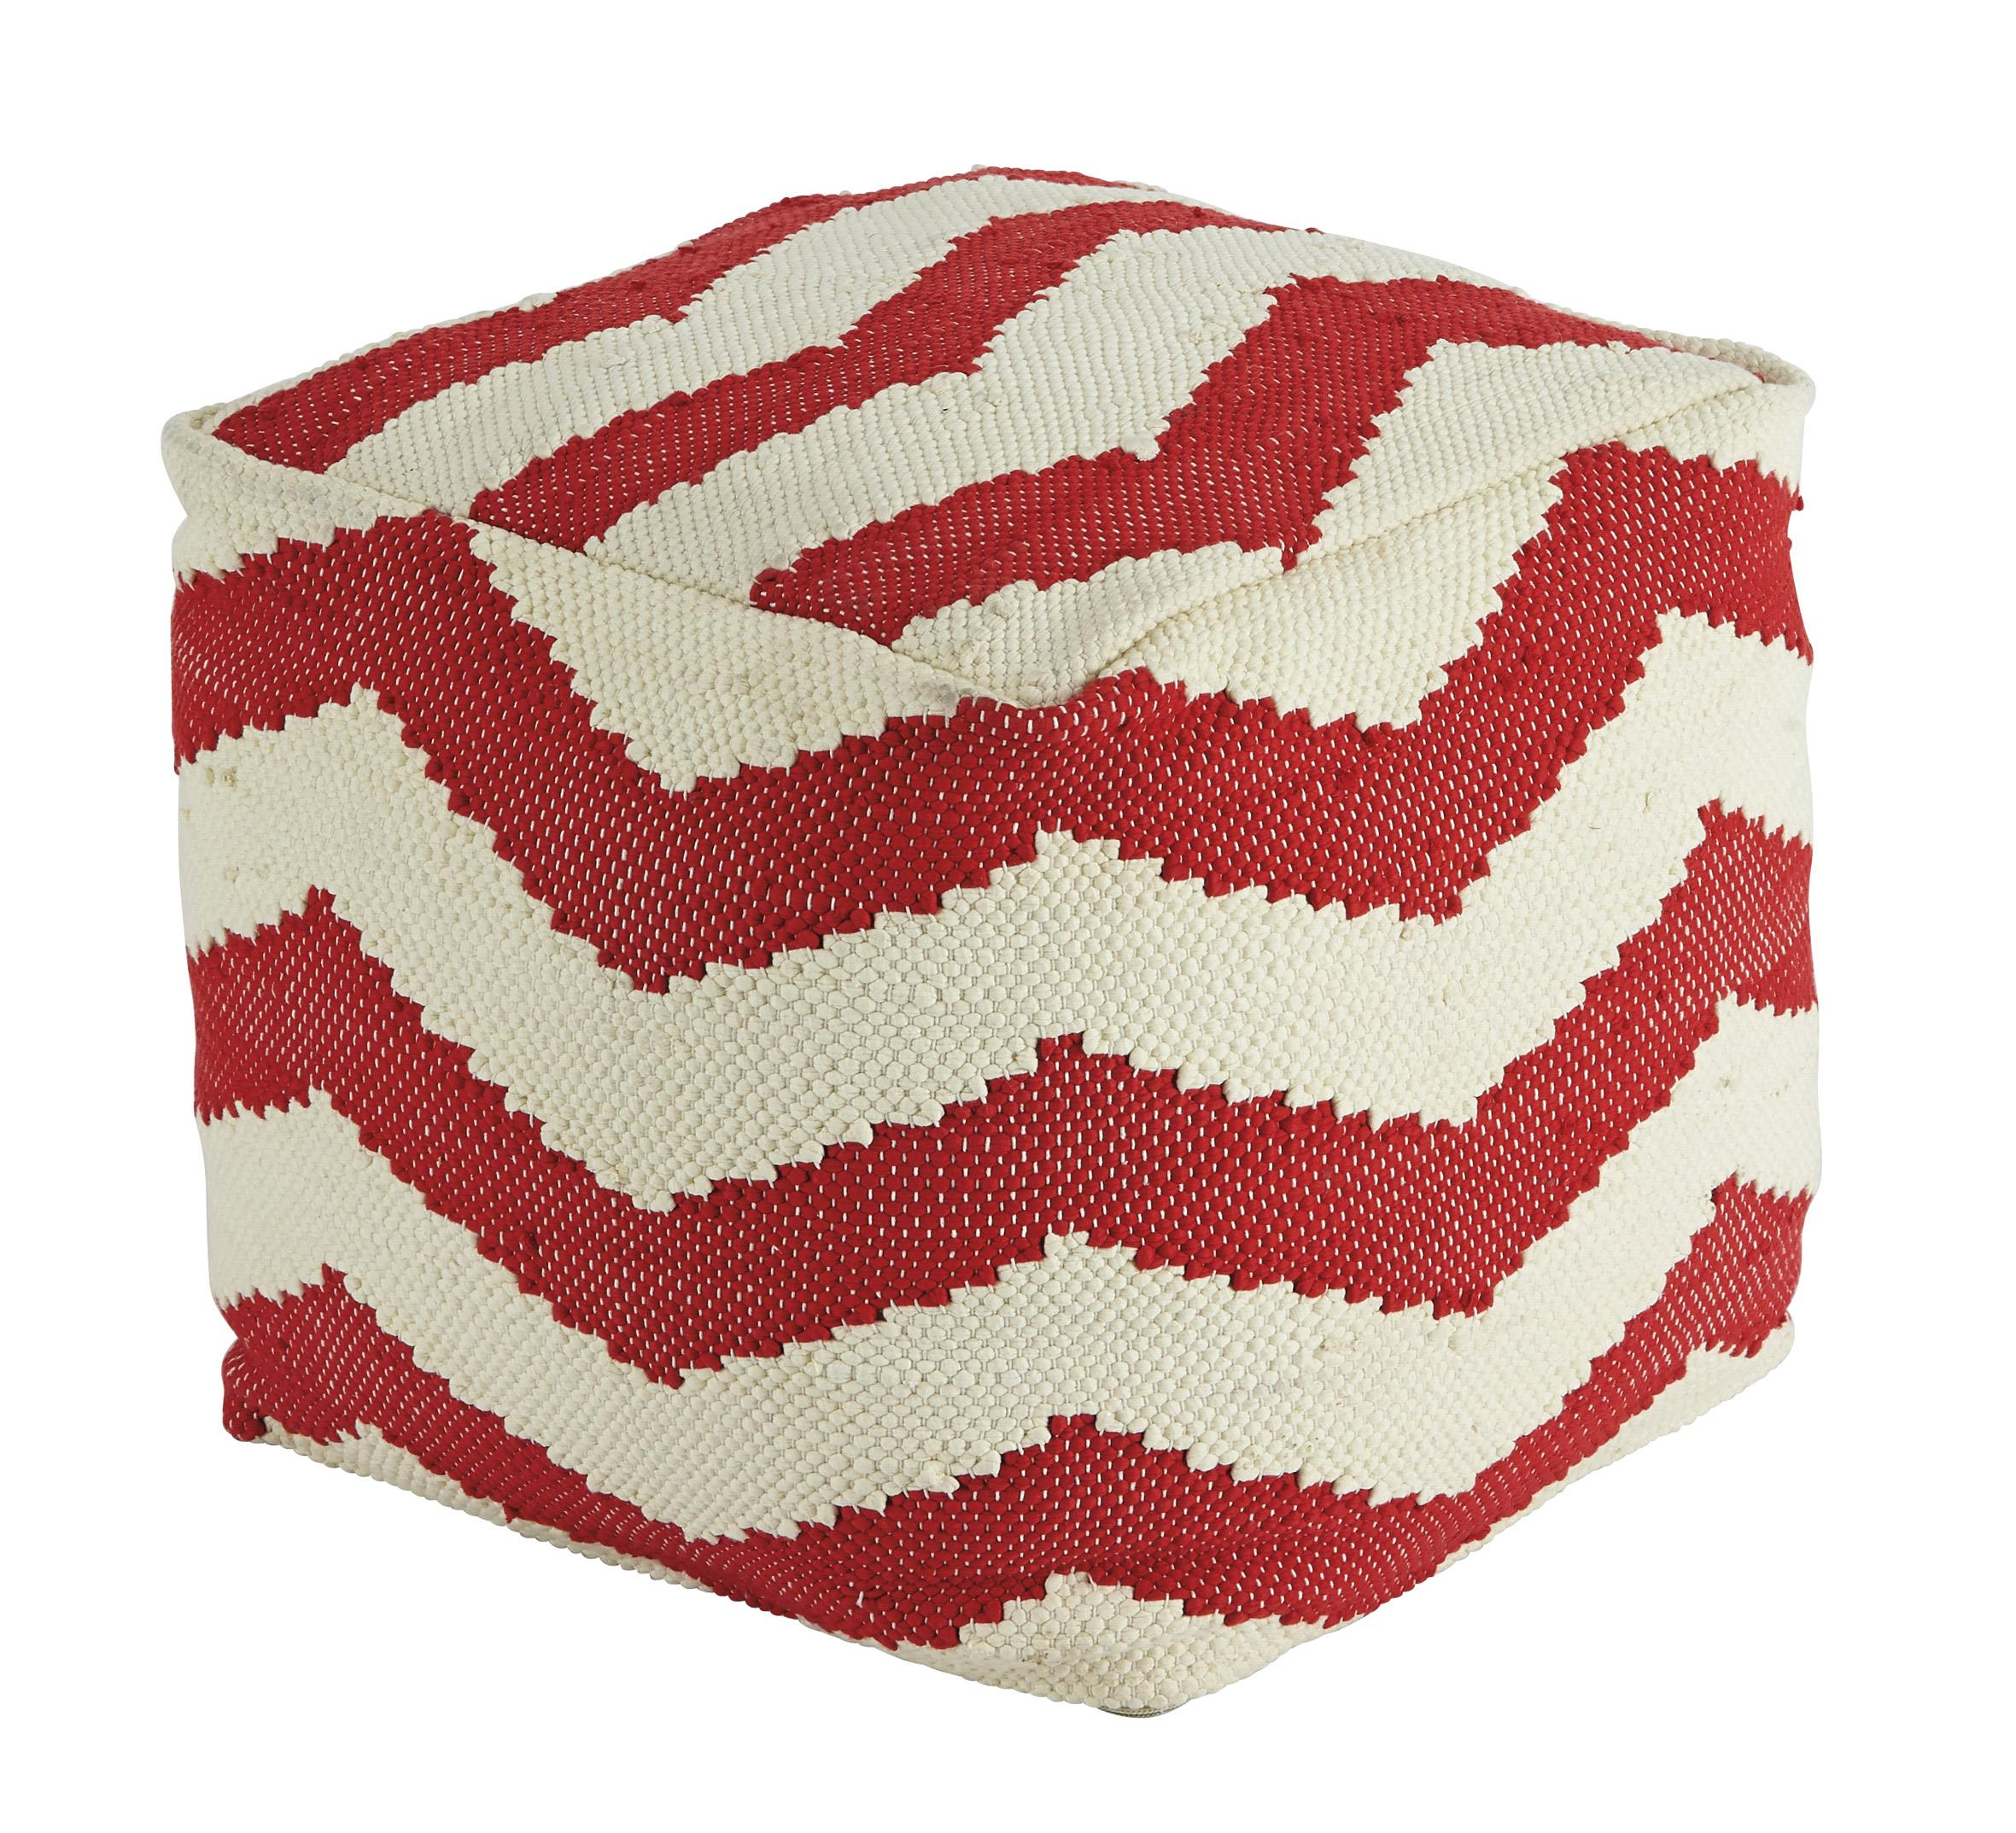 Signature Design by Ashley Poufs Chevron - Red Pouf - Item Number: A1000442